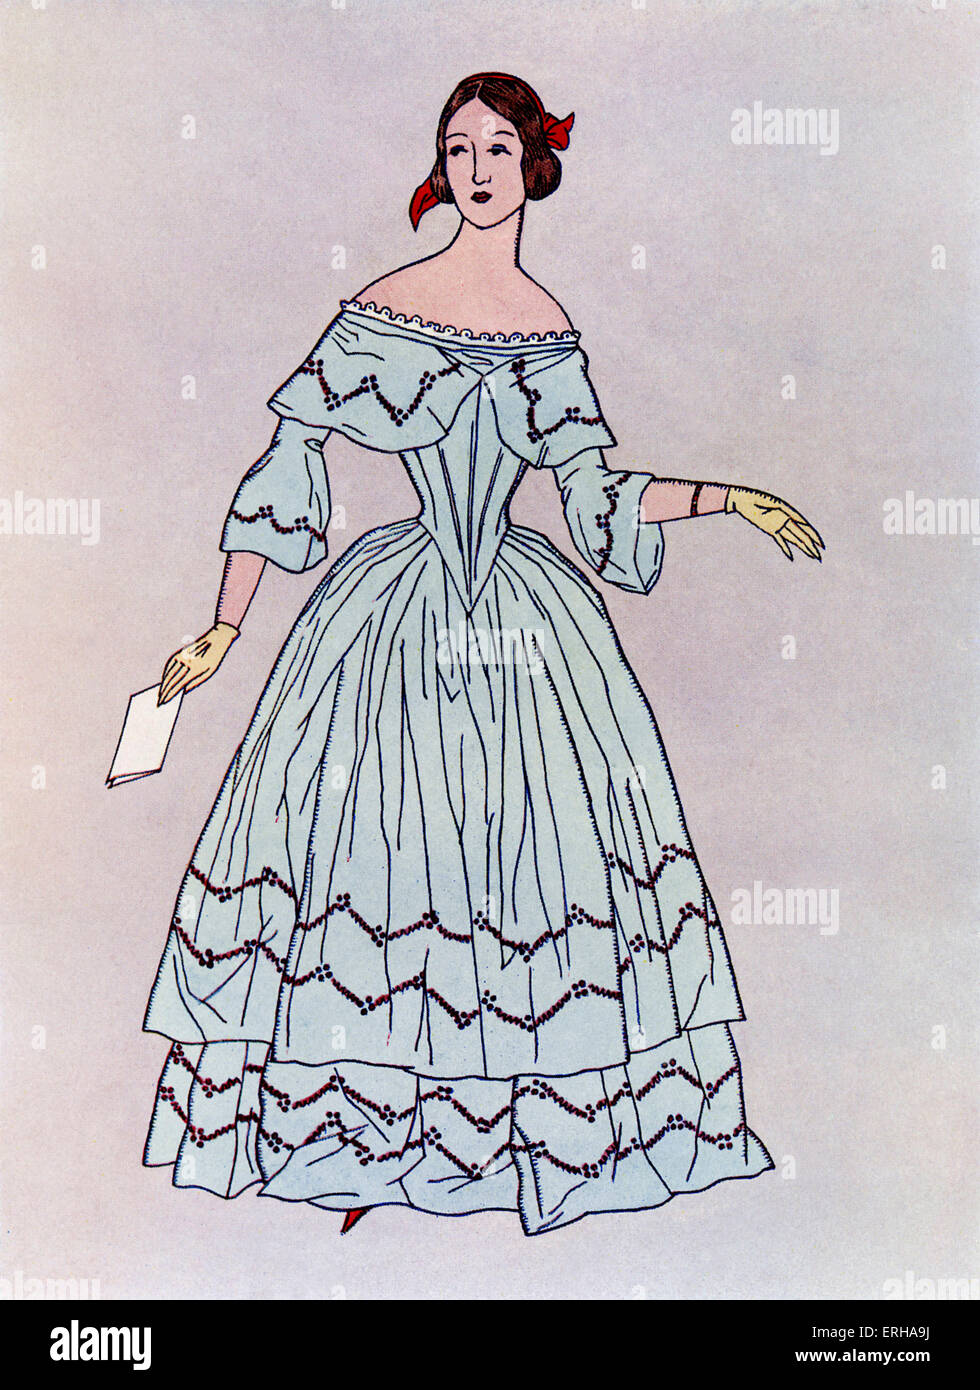 Lady in a mid-19th century dress, popular c.1844. Widening from the waist downwards, such dresses were made up of - Stock Image